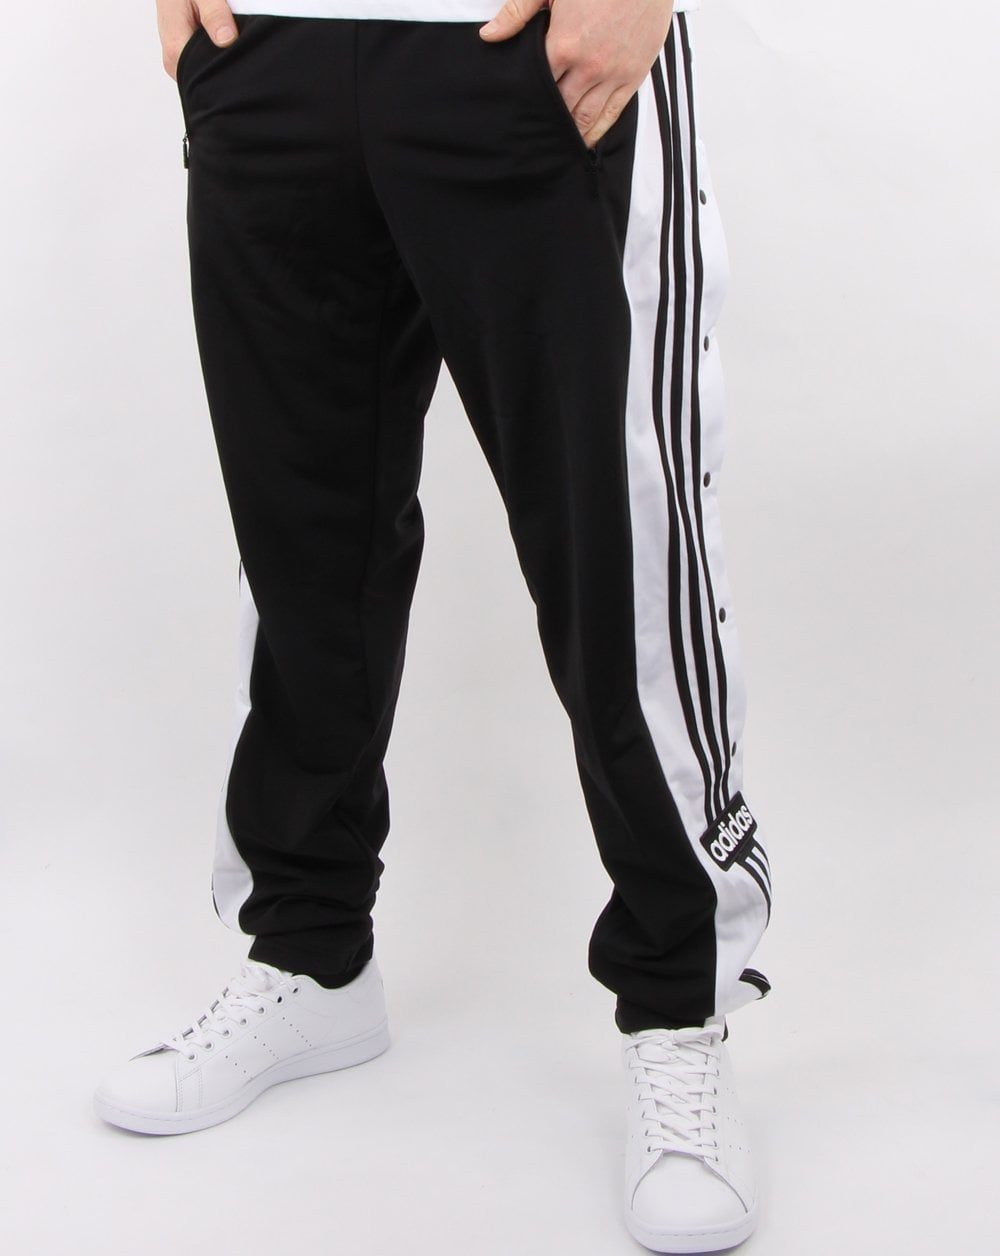 old school adidas pants